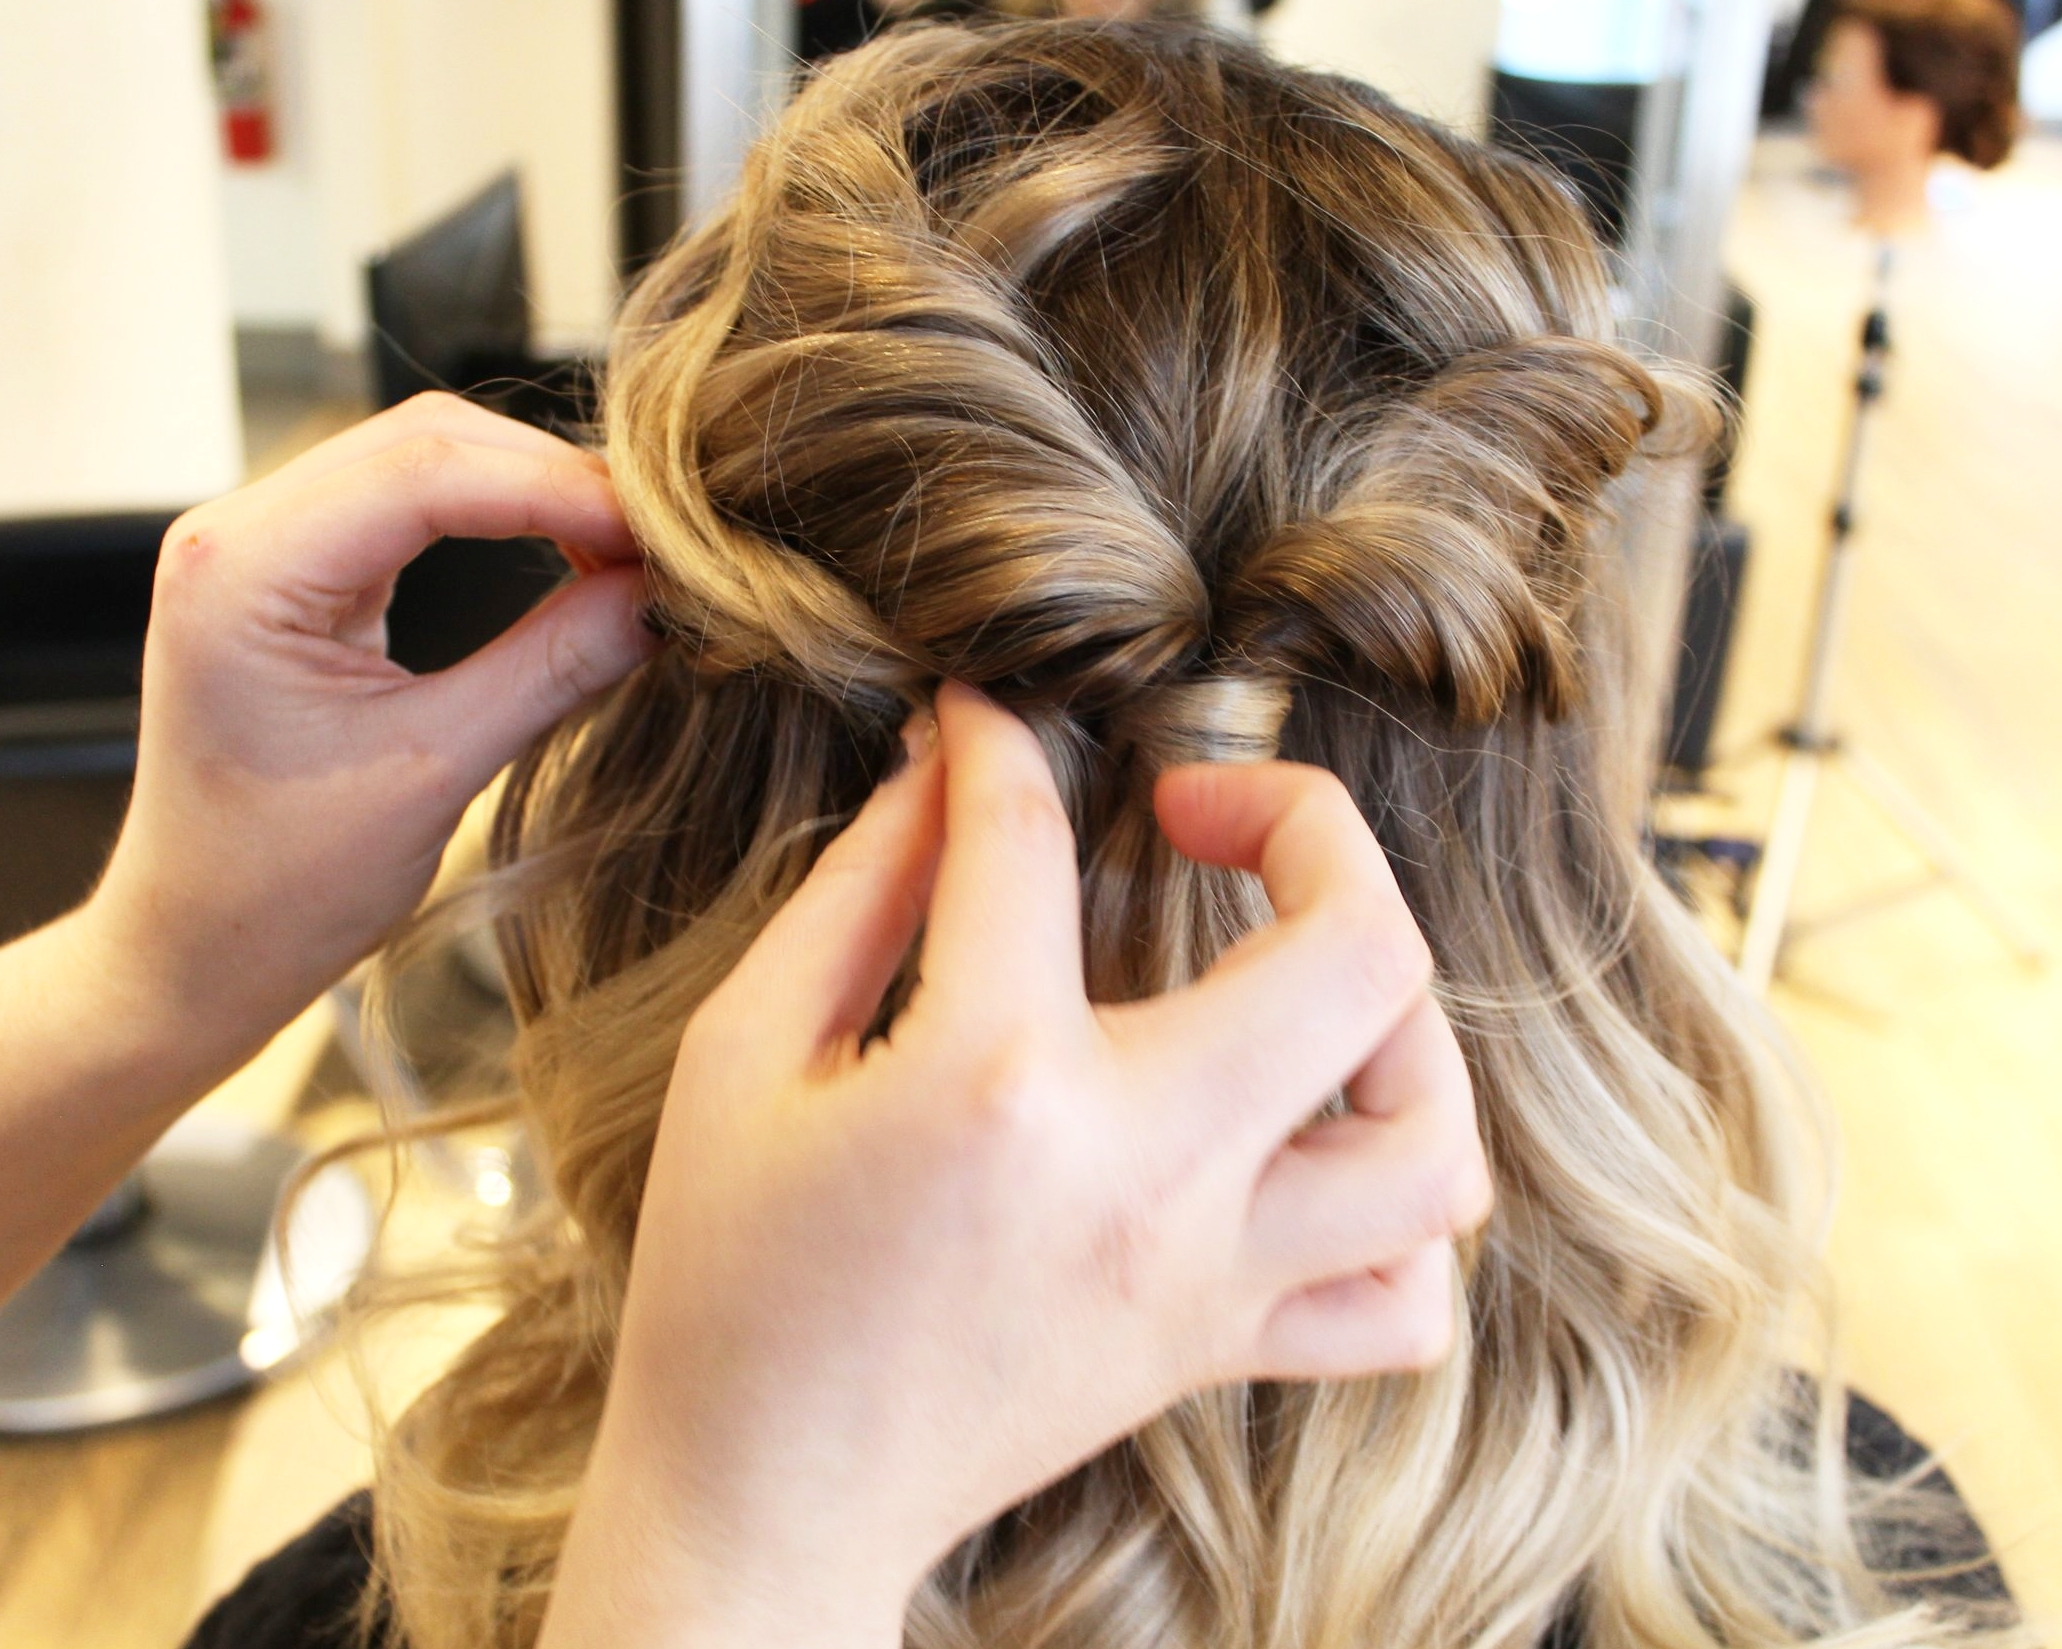 6. Finesse - Pin any loose pieces near the face back into the pony if necessary to refine the look.